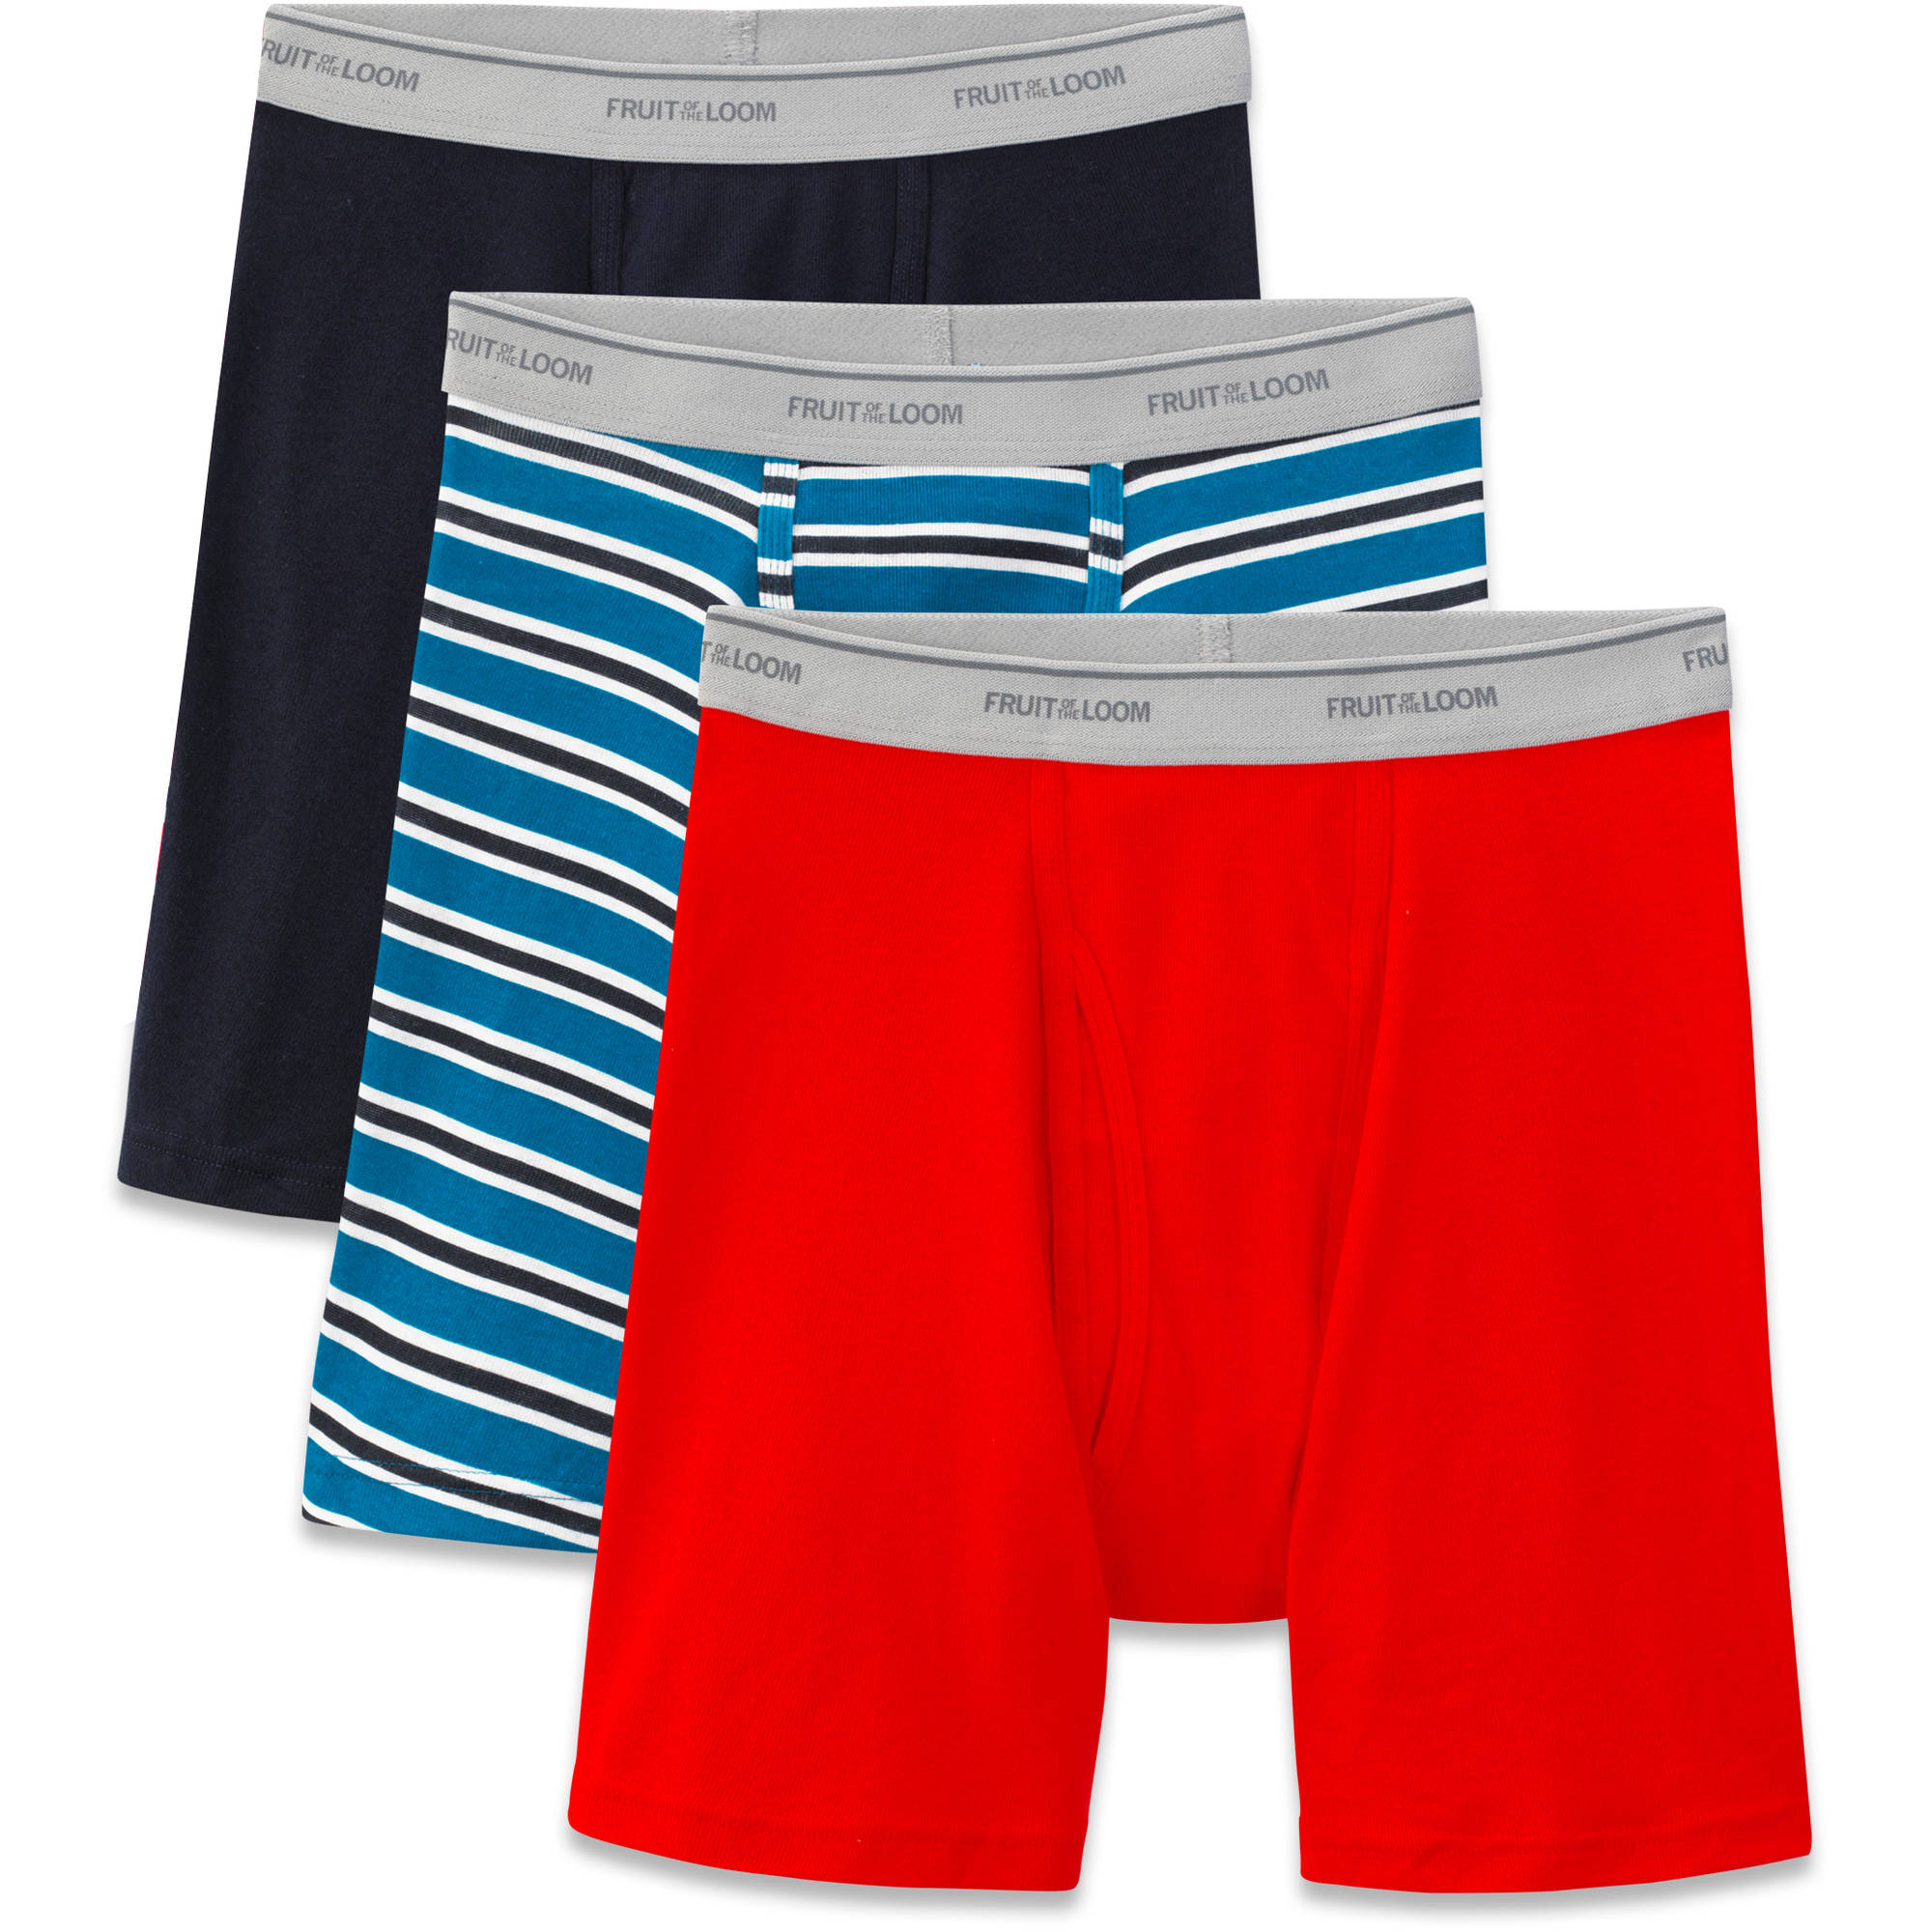 Fruit of the Loom Big Men's Stripes and Solids Boxer Briefs, 3-Pack